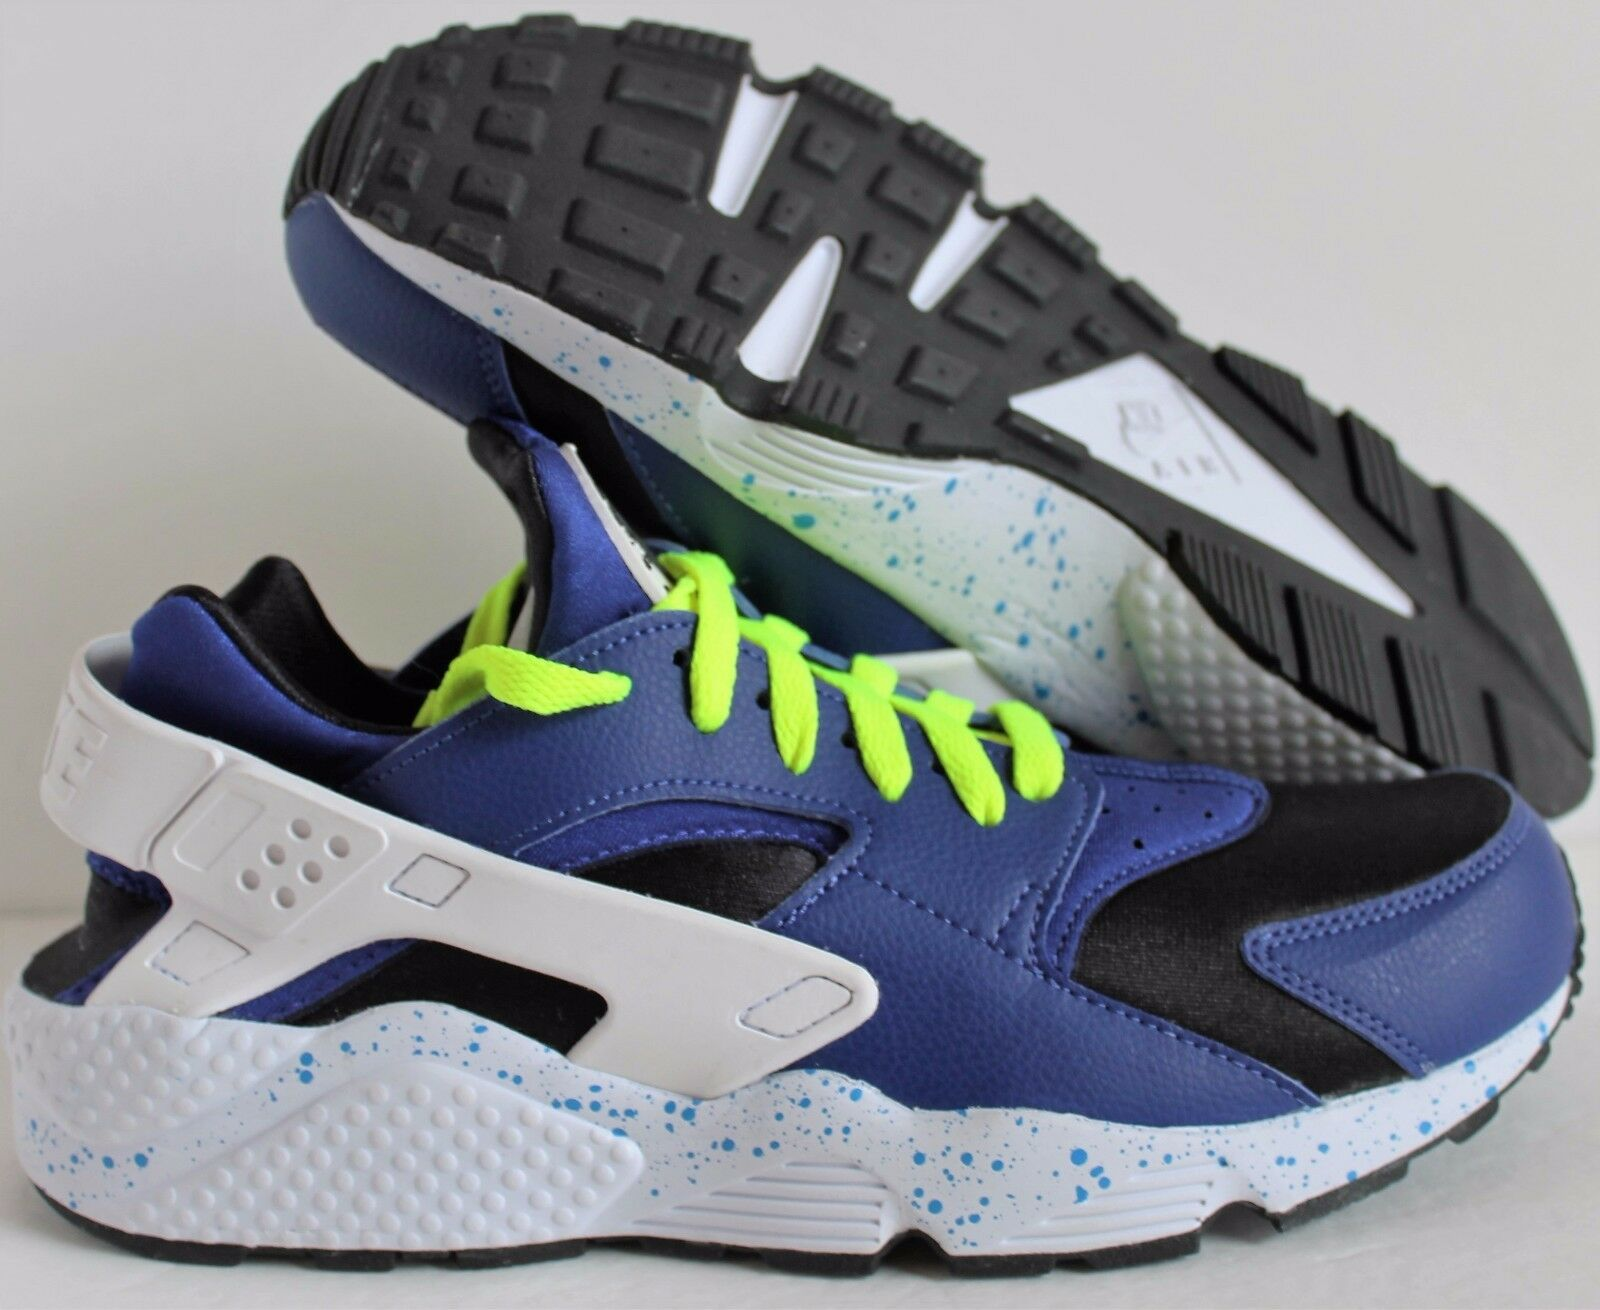 Nike Men's Air Huarache Premium ID bluee-Black-Volt-White SZ 9 [777330-994]